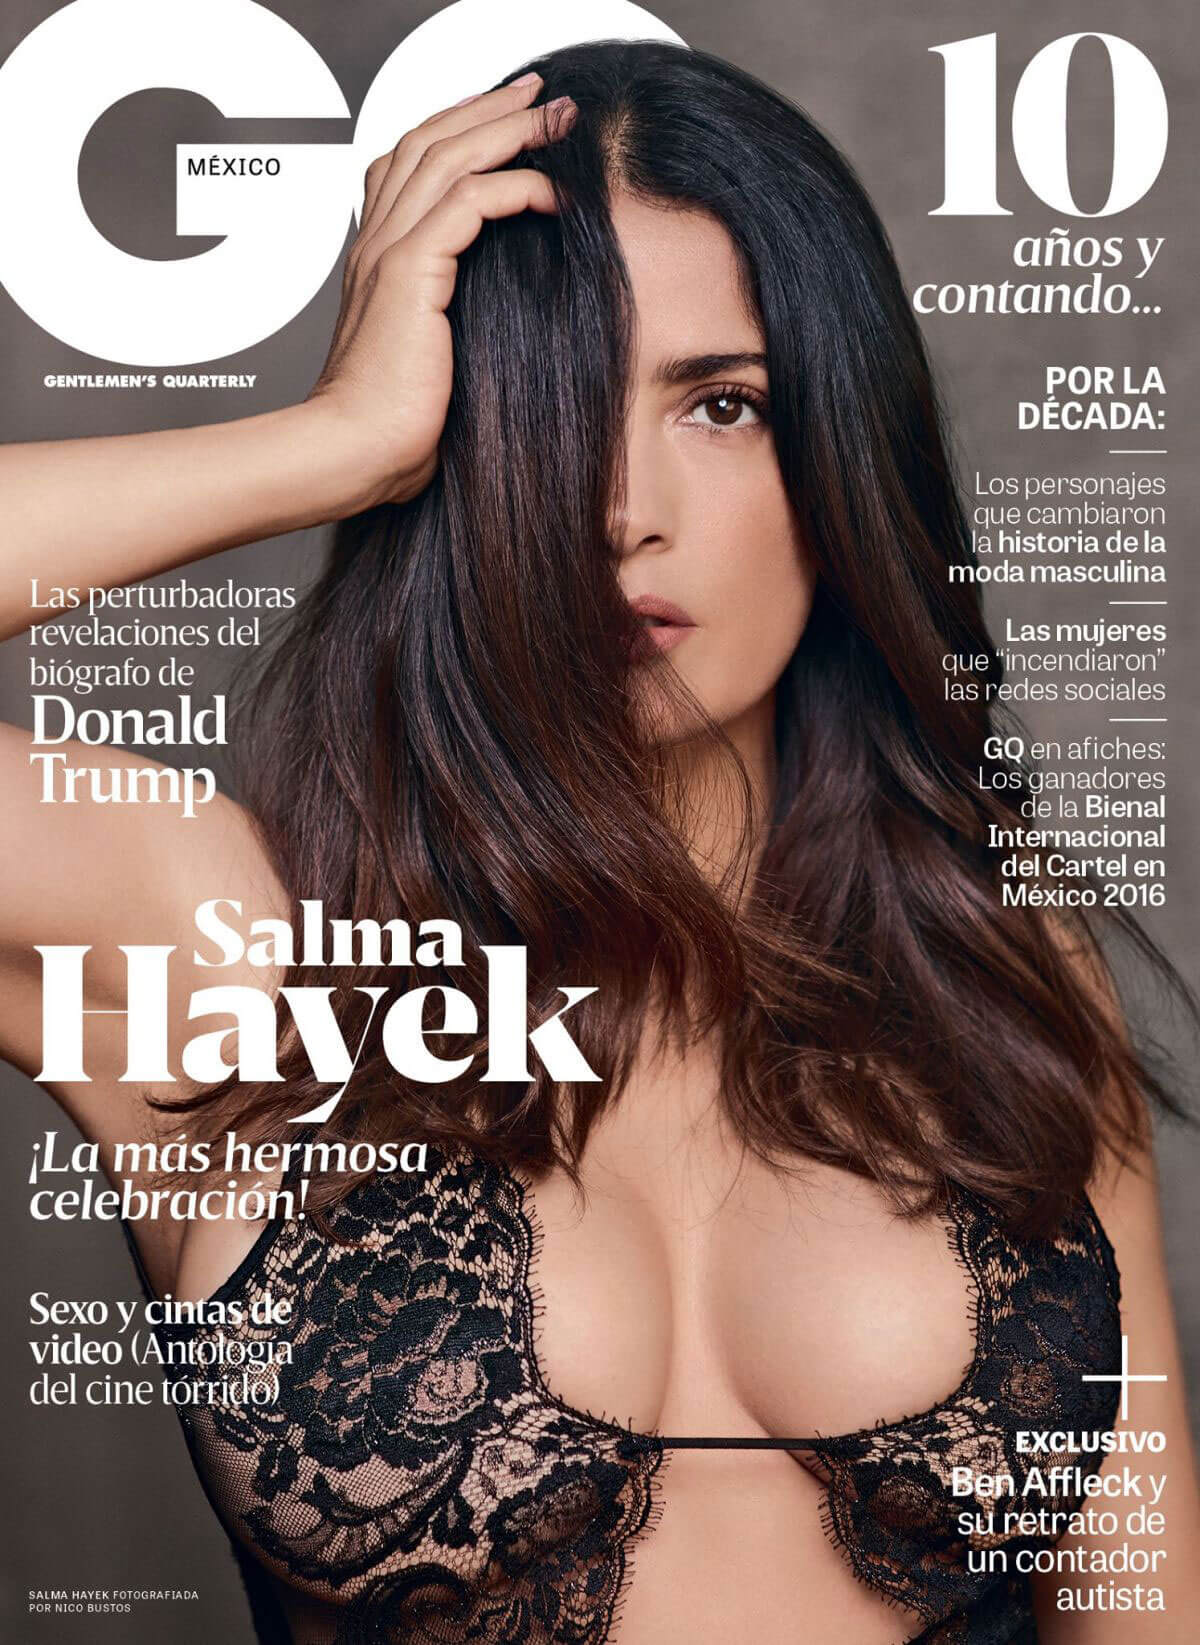 Salma Hayek Images on the Cover of GQ Magazine, Mexico November 2016